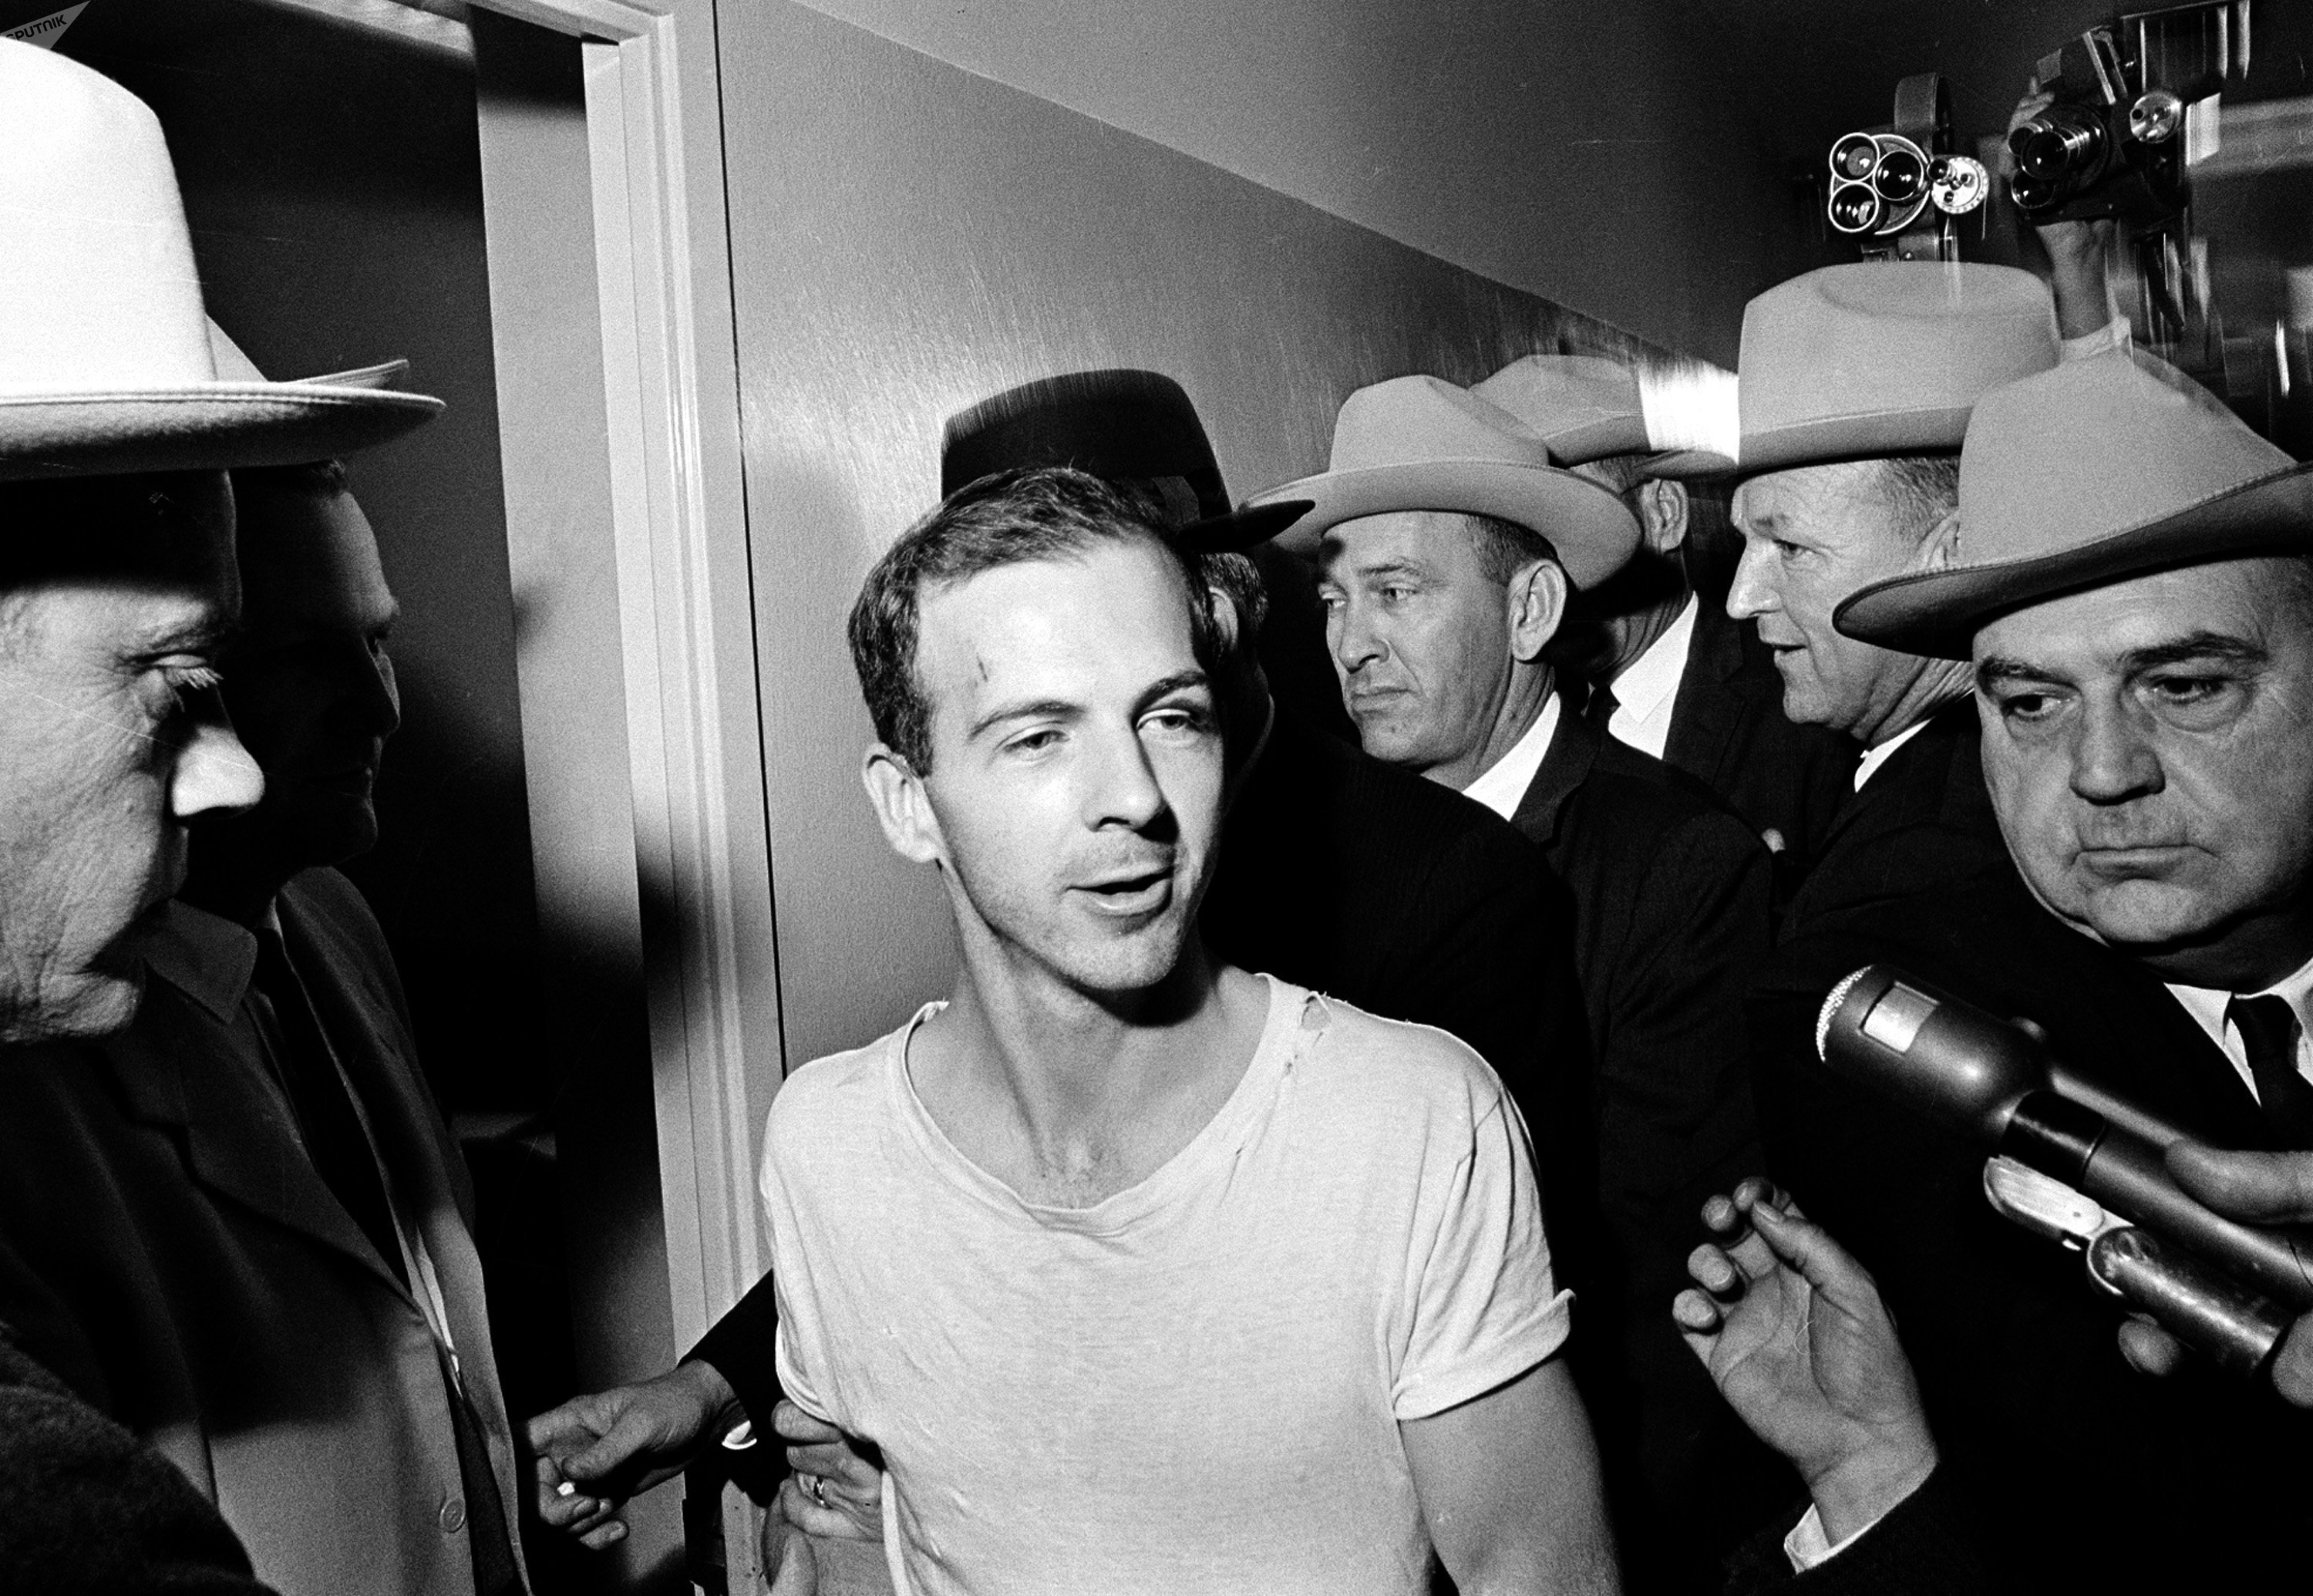 Surrounded by detectives, Lee Harvey Oswald talks to the press as he is led down a corridor of the Dallas police station for another round of questioning in connection with the assassination of US President John F. Kennedy, November 23, 1963.